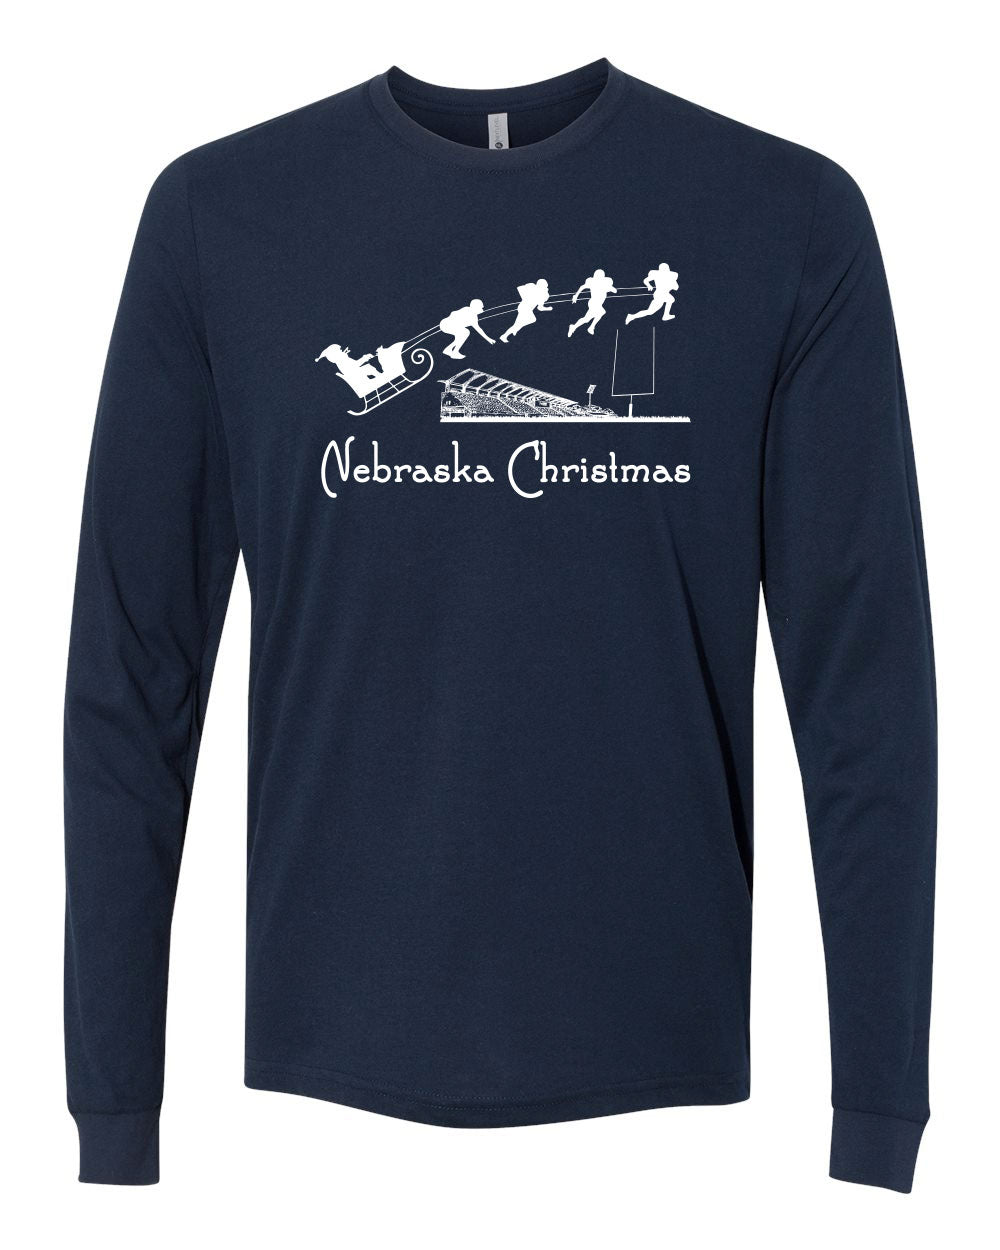 Nebraska Christmas - Long Sleeve